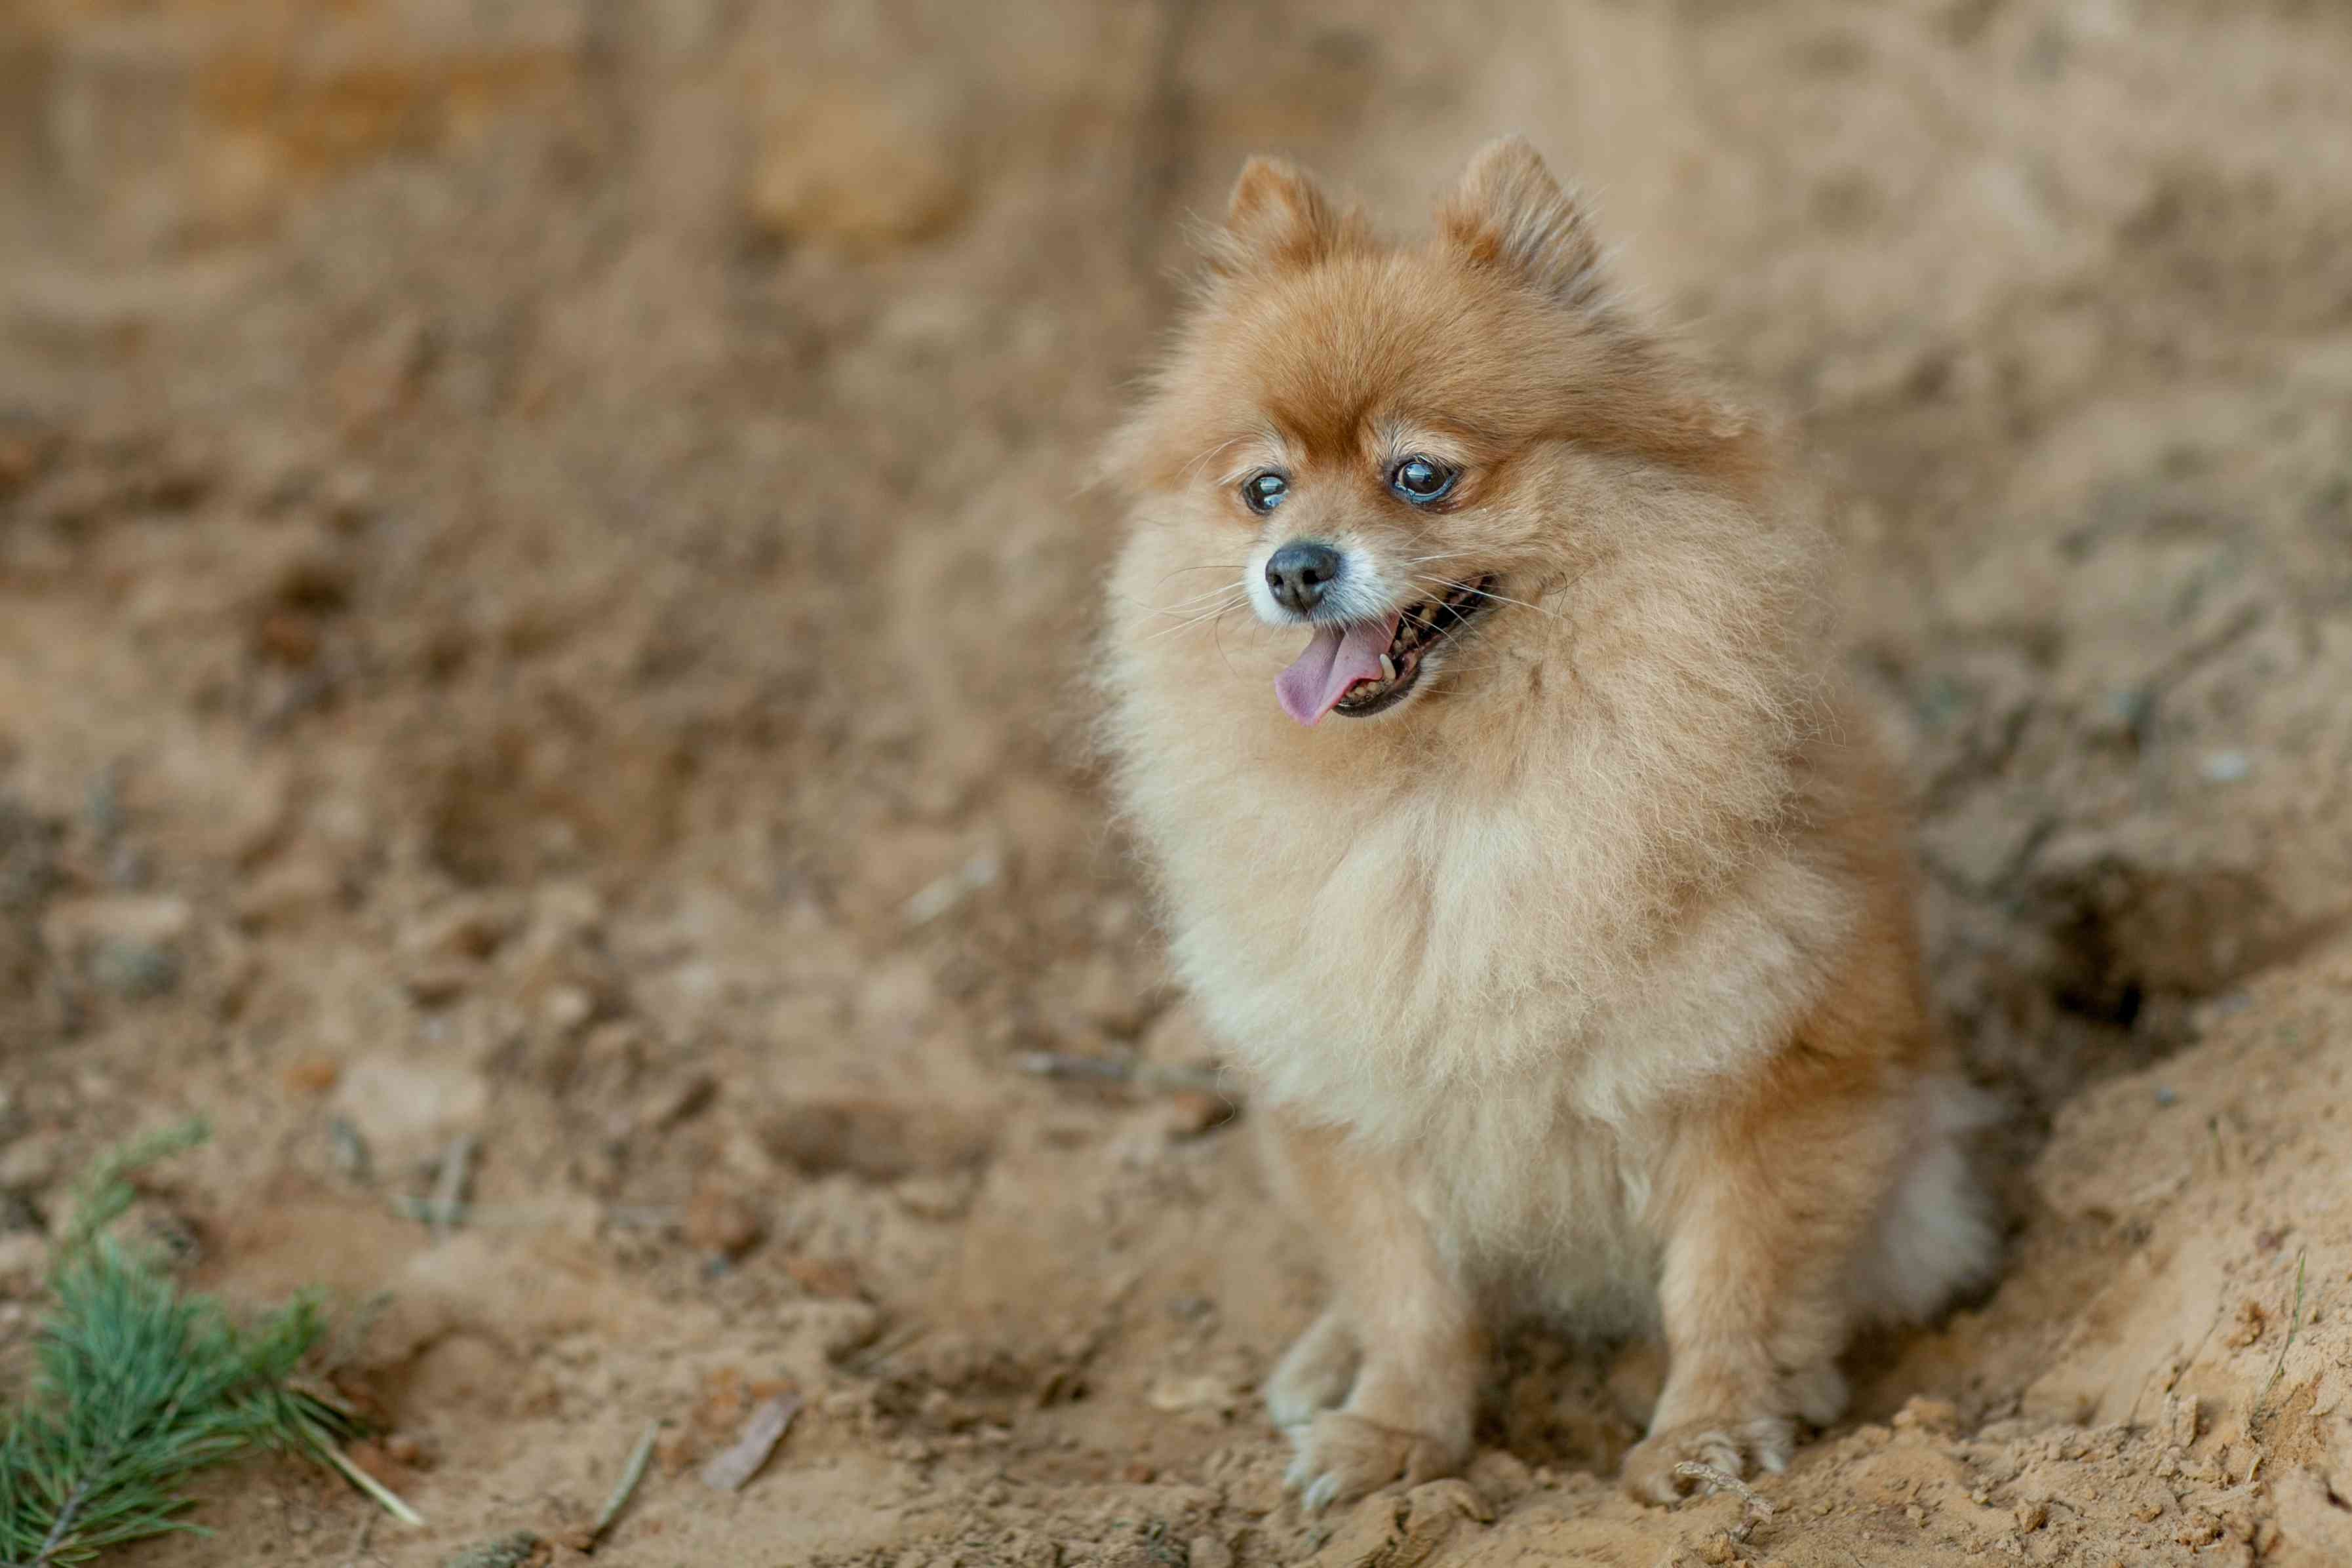 A fluffy Pomeranian sitting in the sand